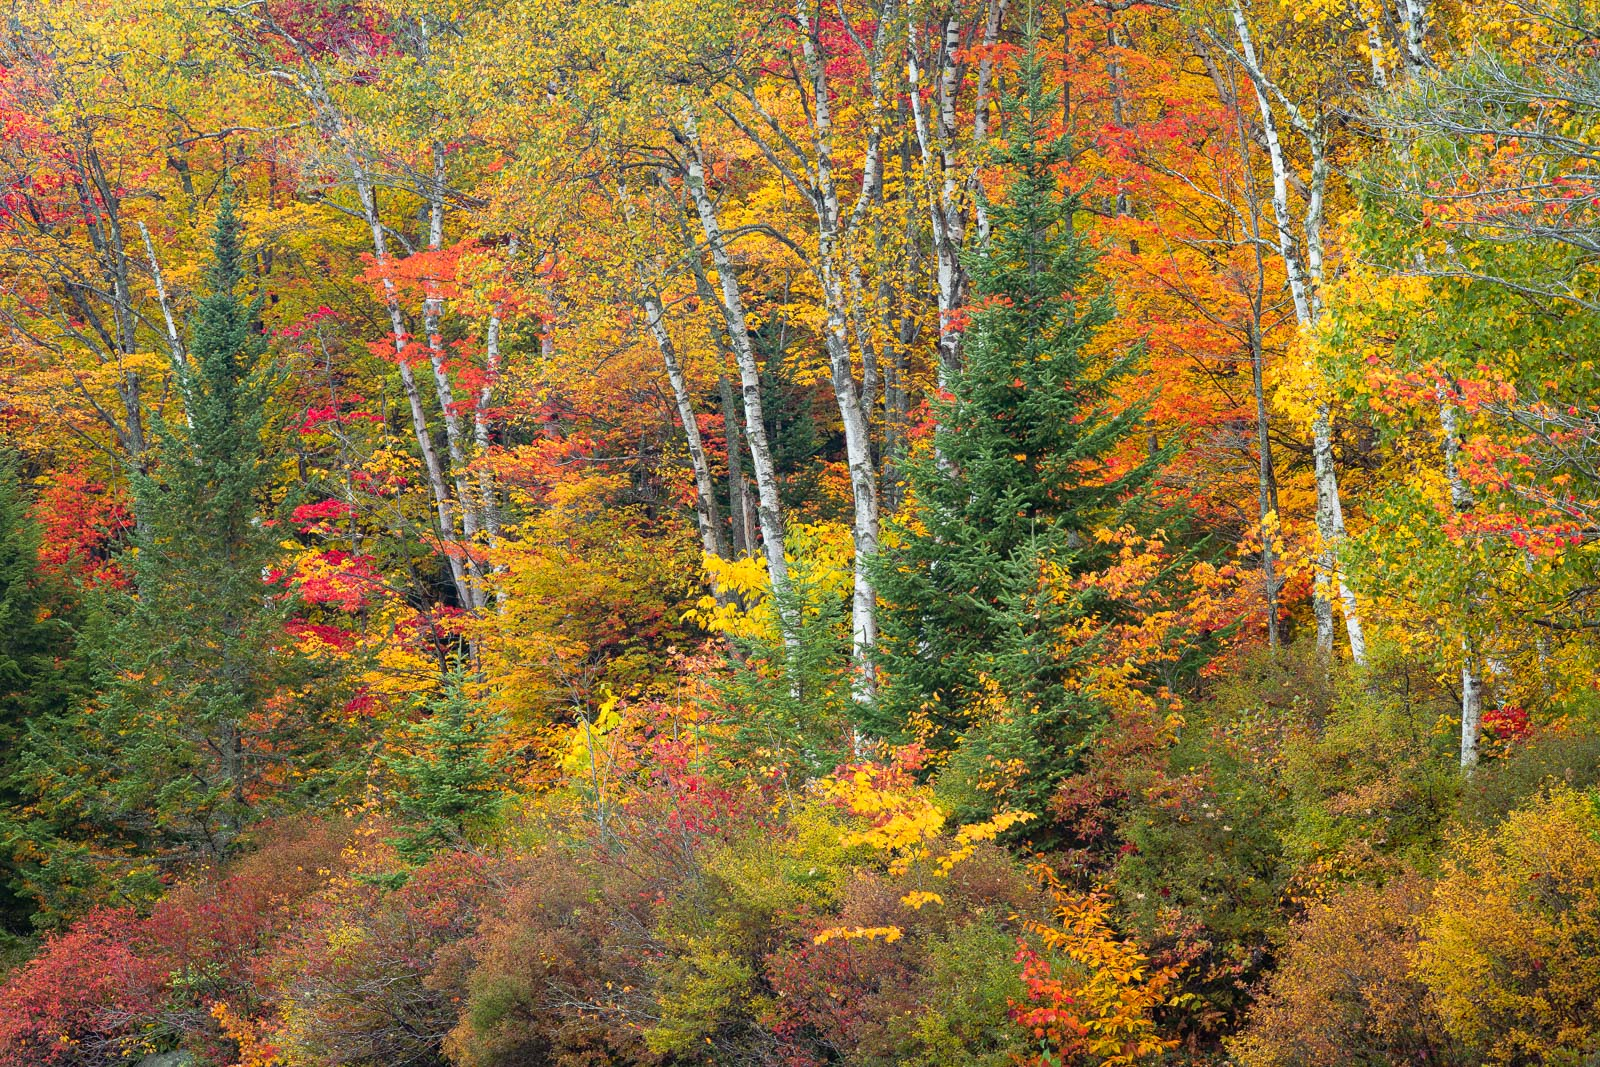 Autumn color in the Northern Vermont.